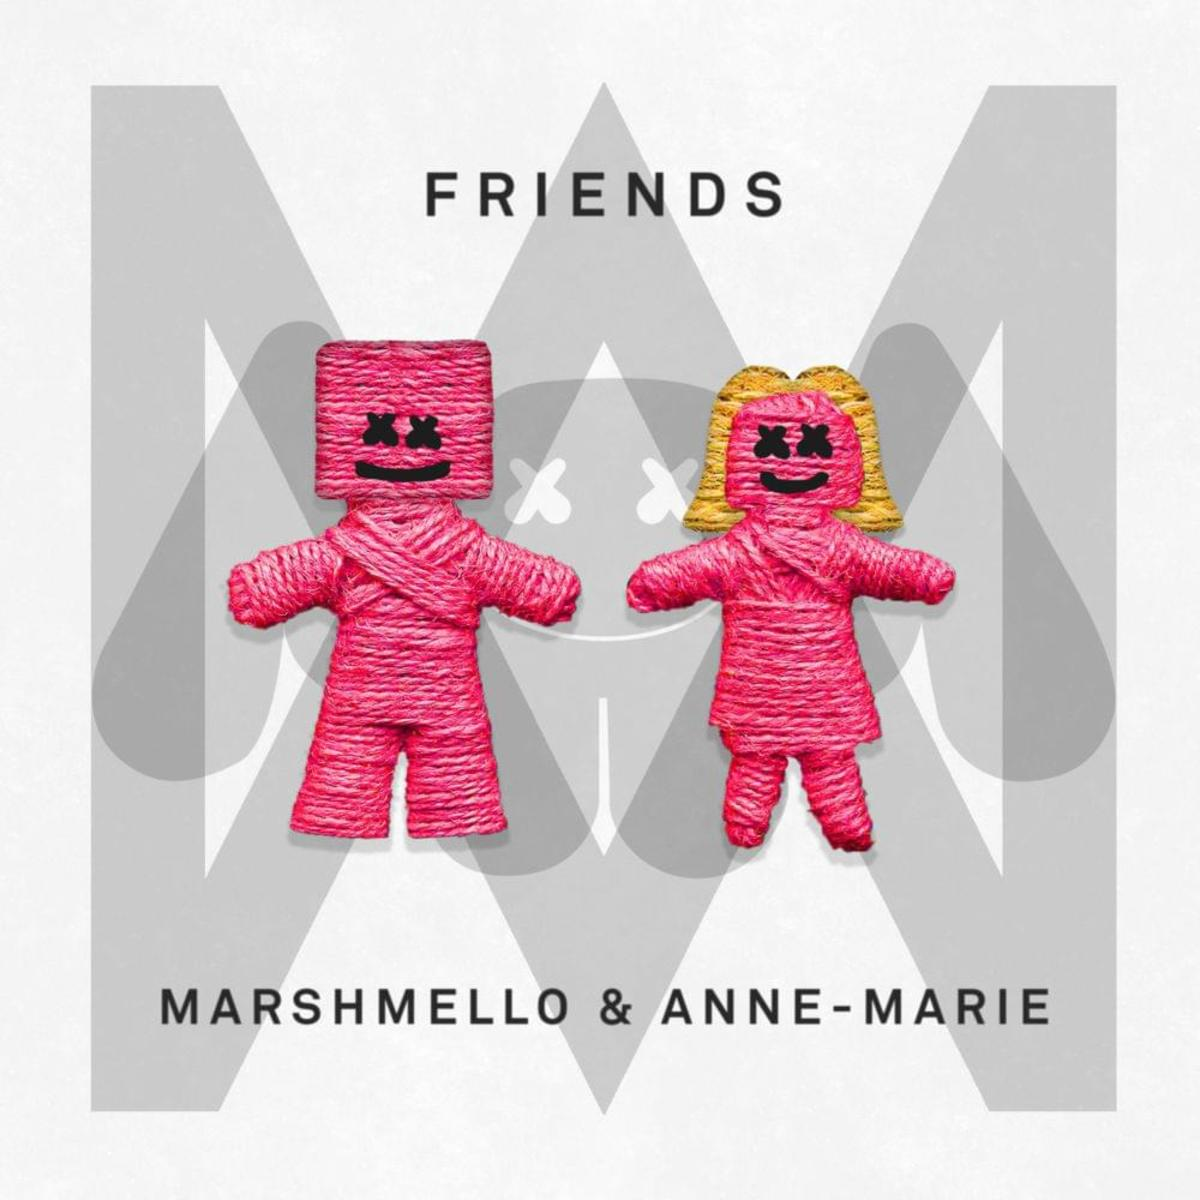 FRIENDS by Marshmello  and Anne-Marie